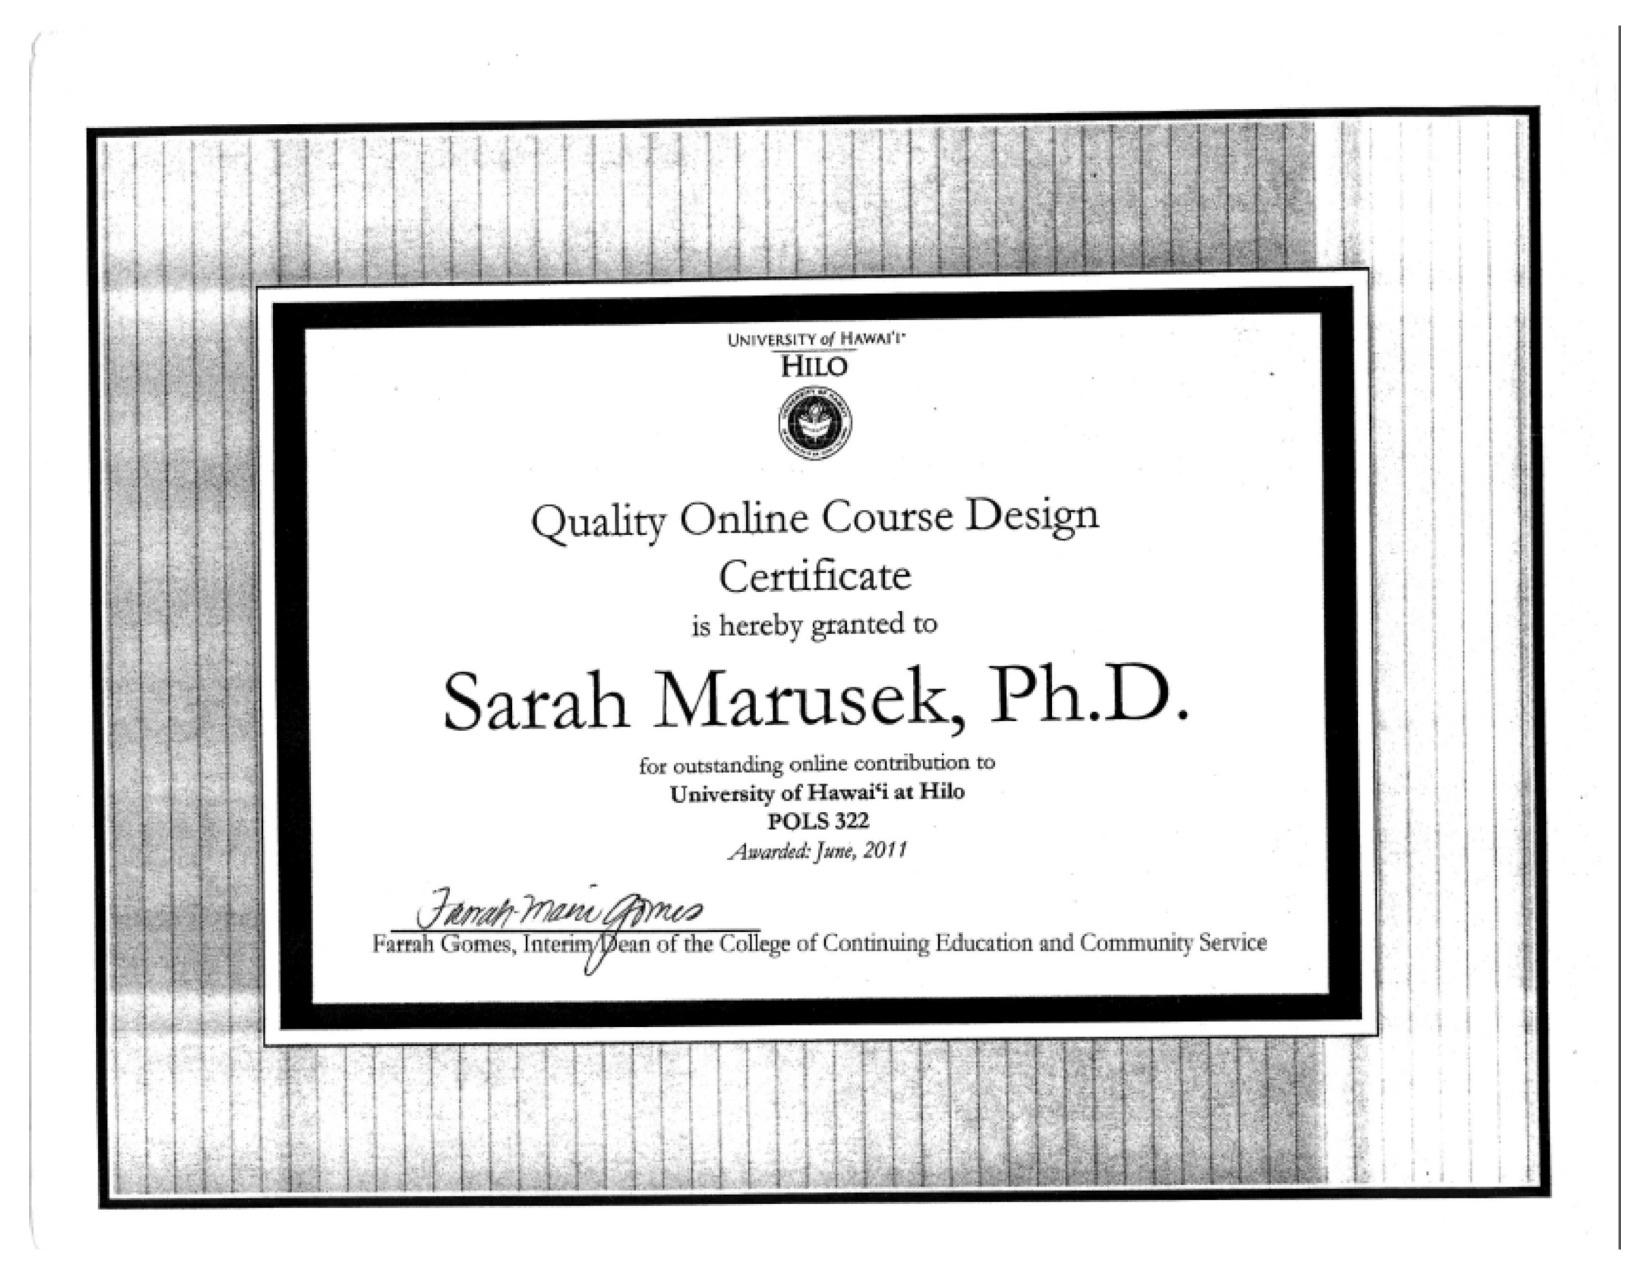 Quality Online Course Design Certificate, awarded to Sarah Marusek